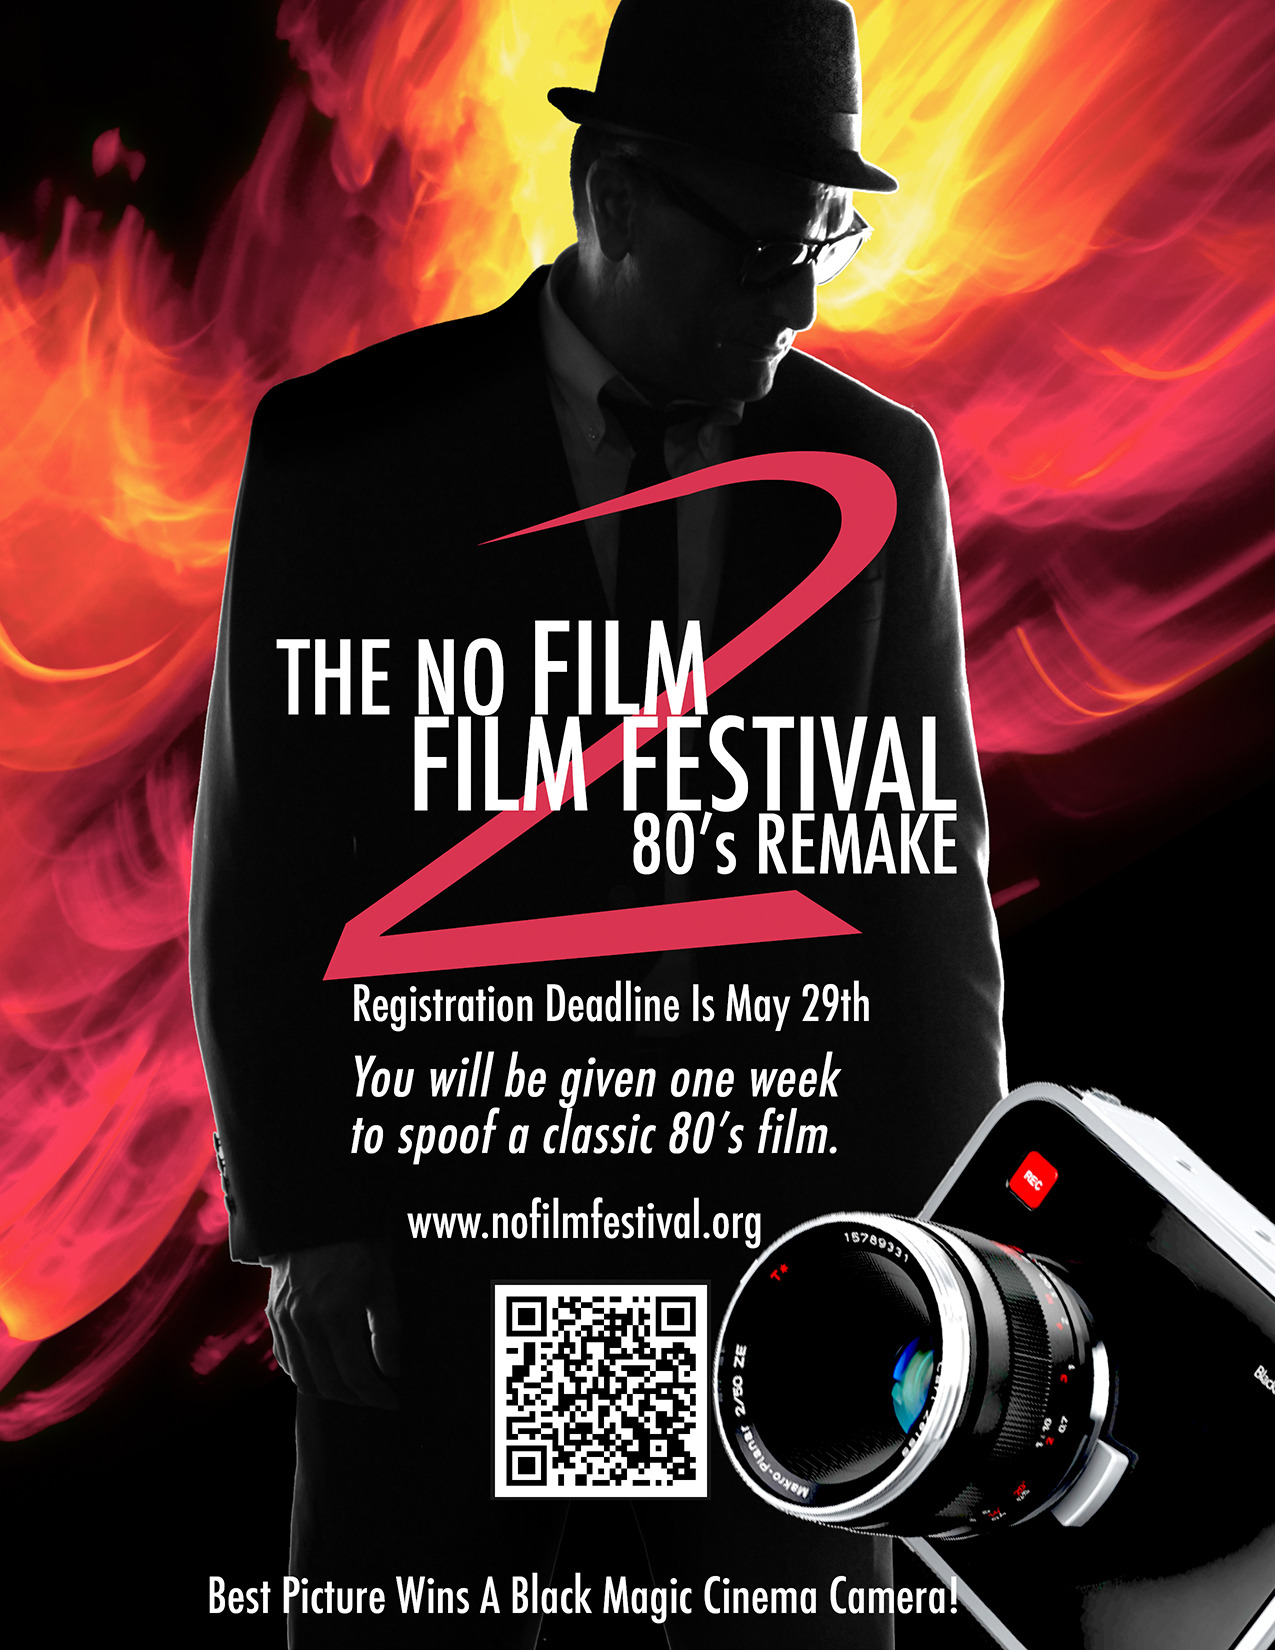 The No Film Film Festival 2: 80's Remake. Registration Deadline May 29, 2013